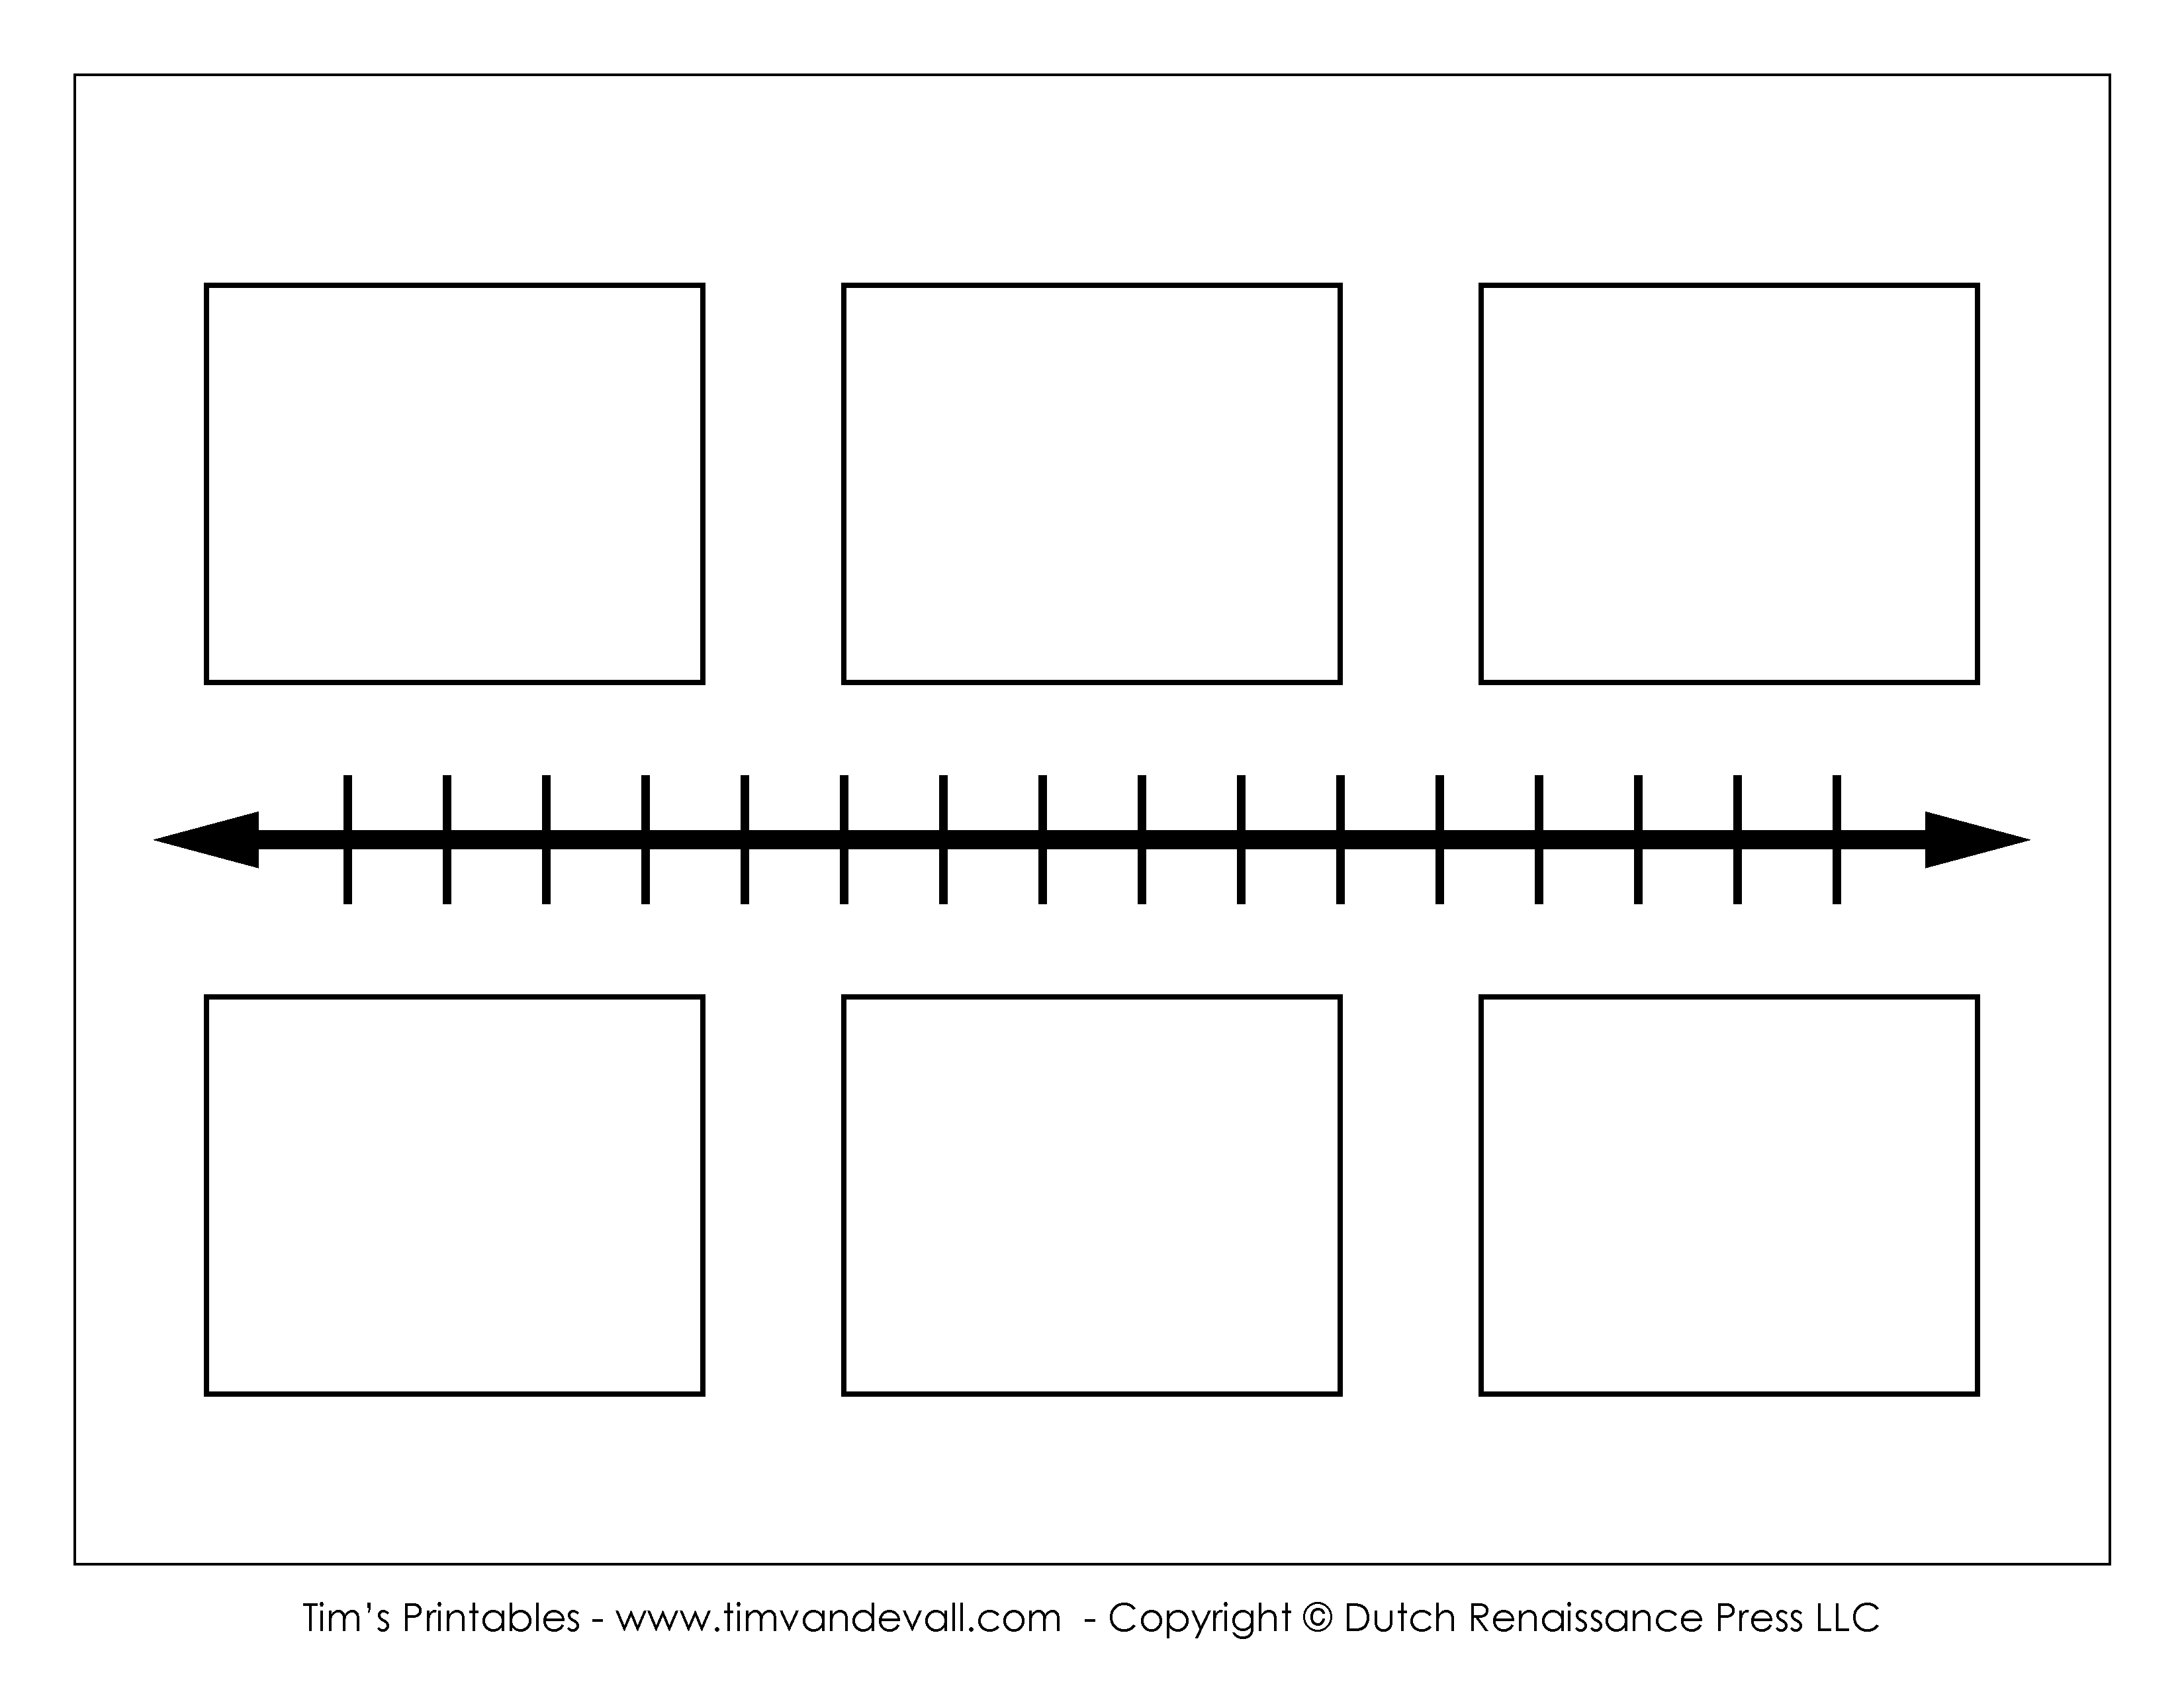 small resolution of Blank Timeline Template - Tim's Printables